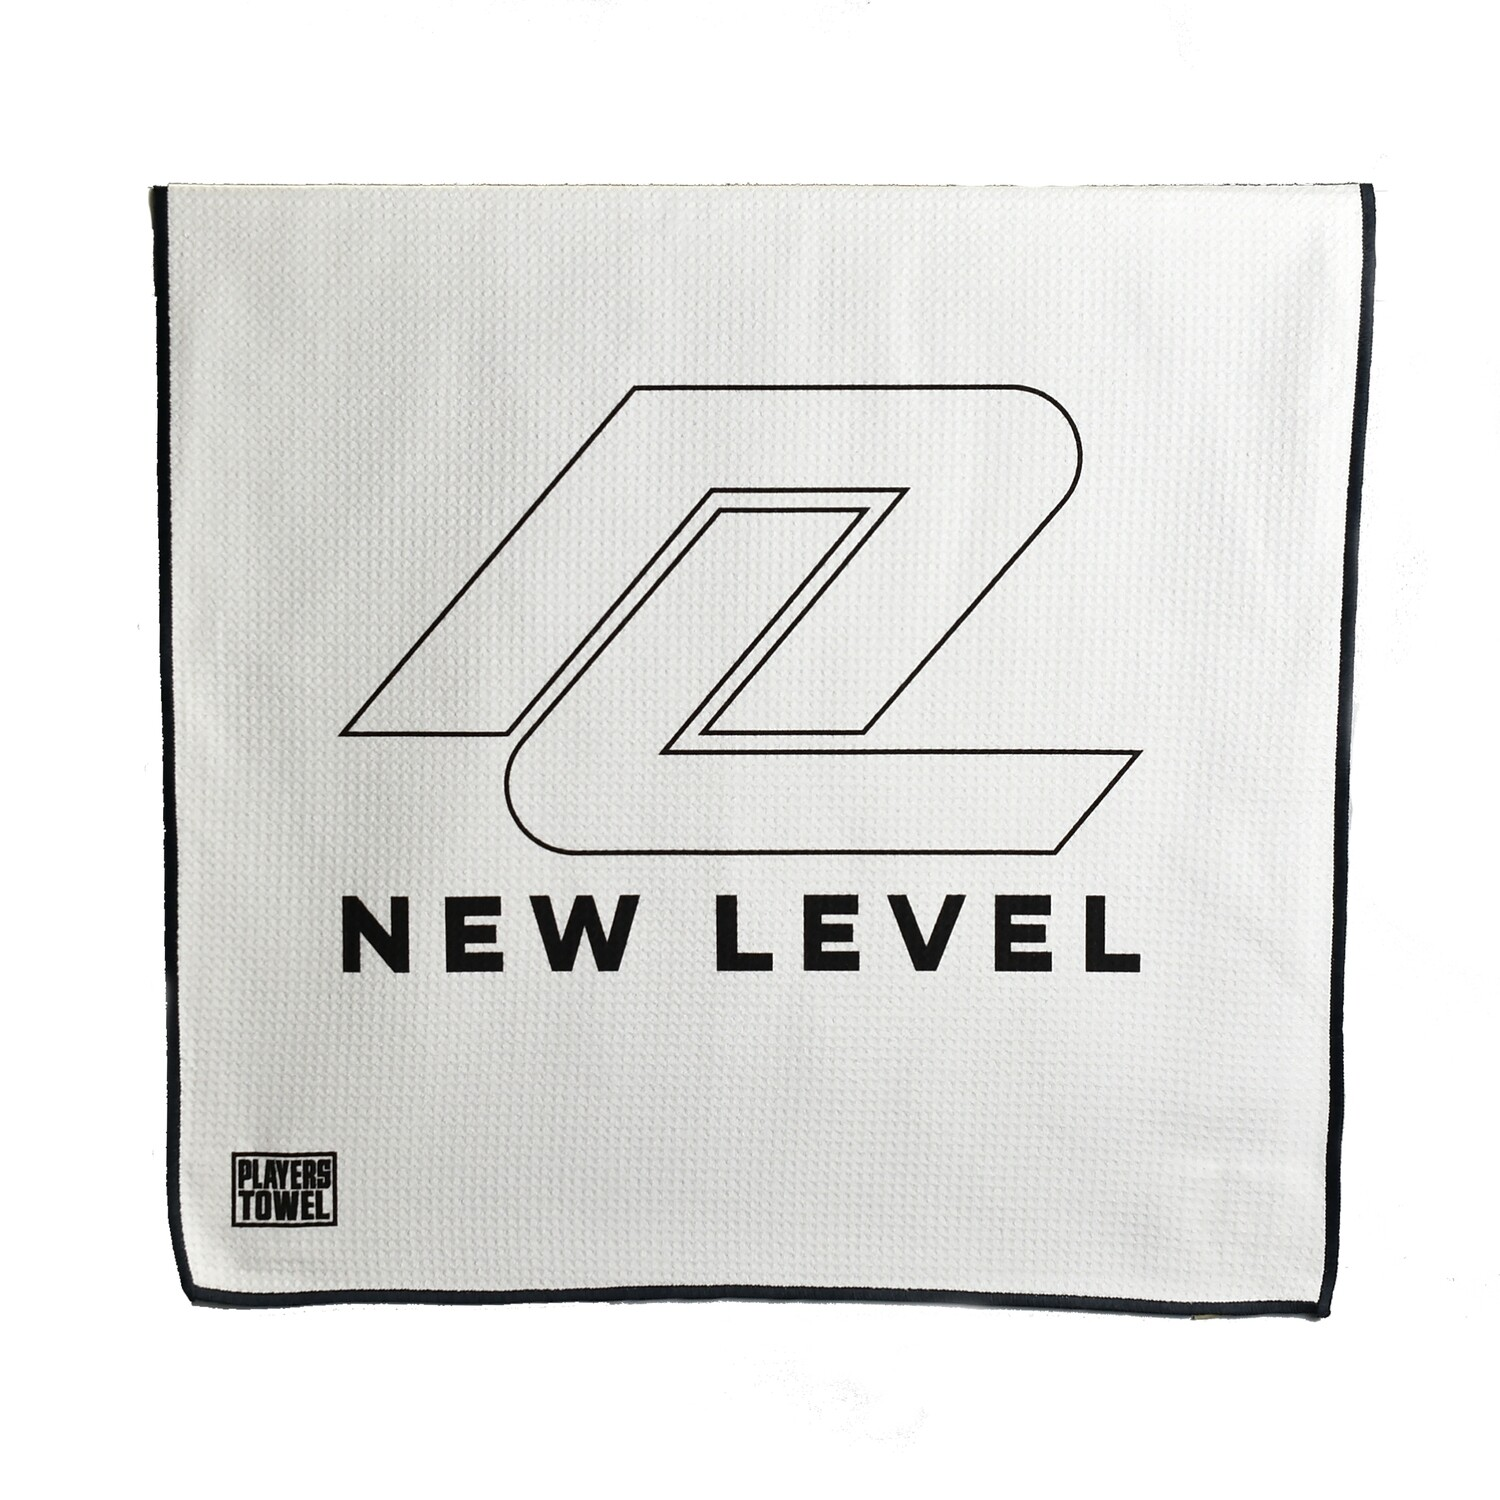 New Level Player's Towel